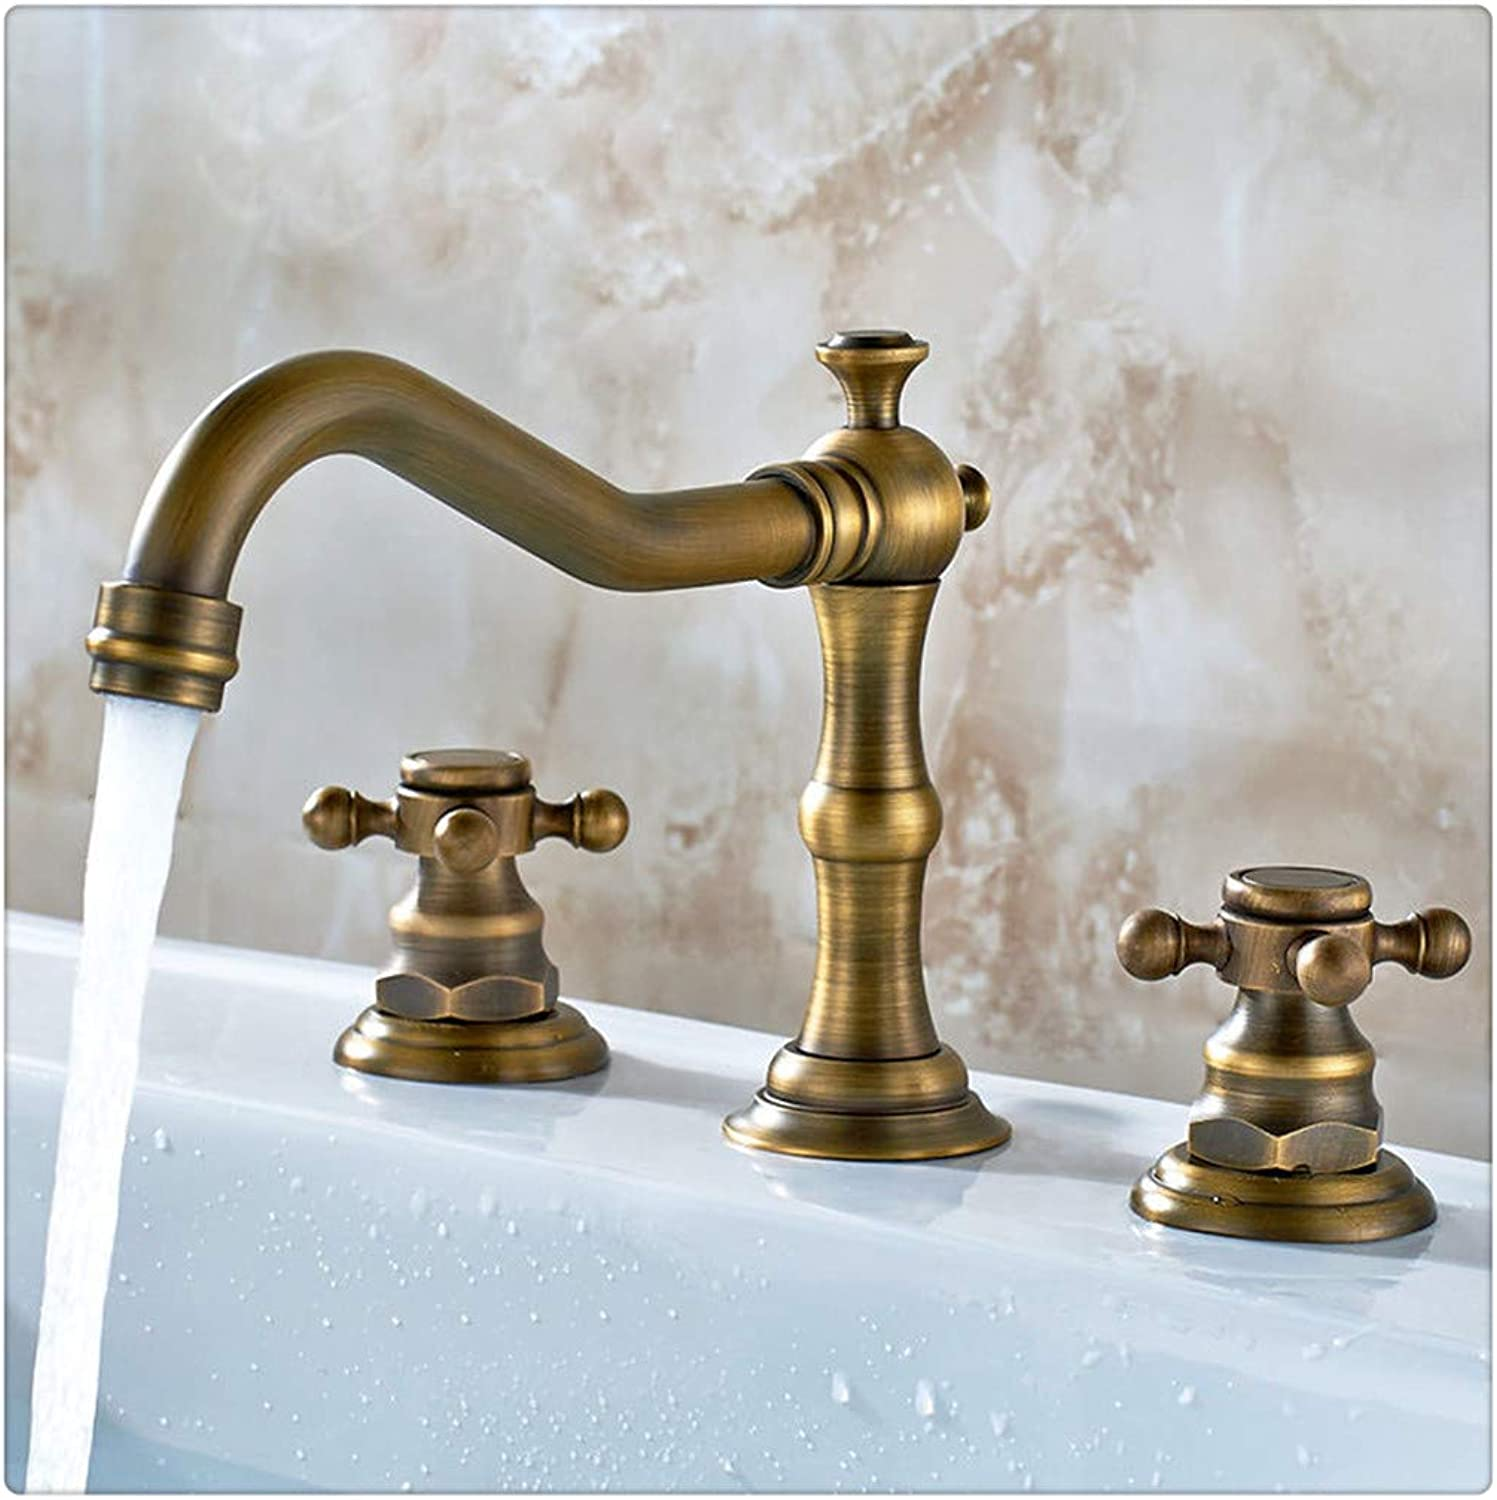 Bathroom Sink Taps Classic 2-Handle Basin Filler Solid Brass Widespread Bathroom Sink Mixer Faucet,Brass